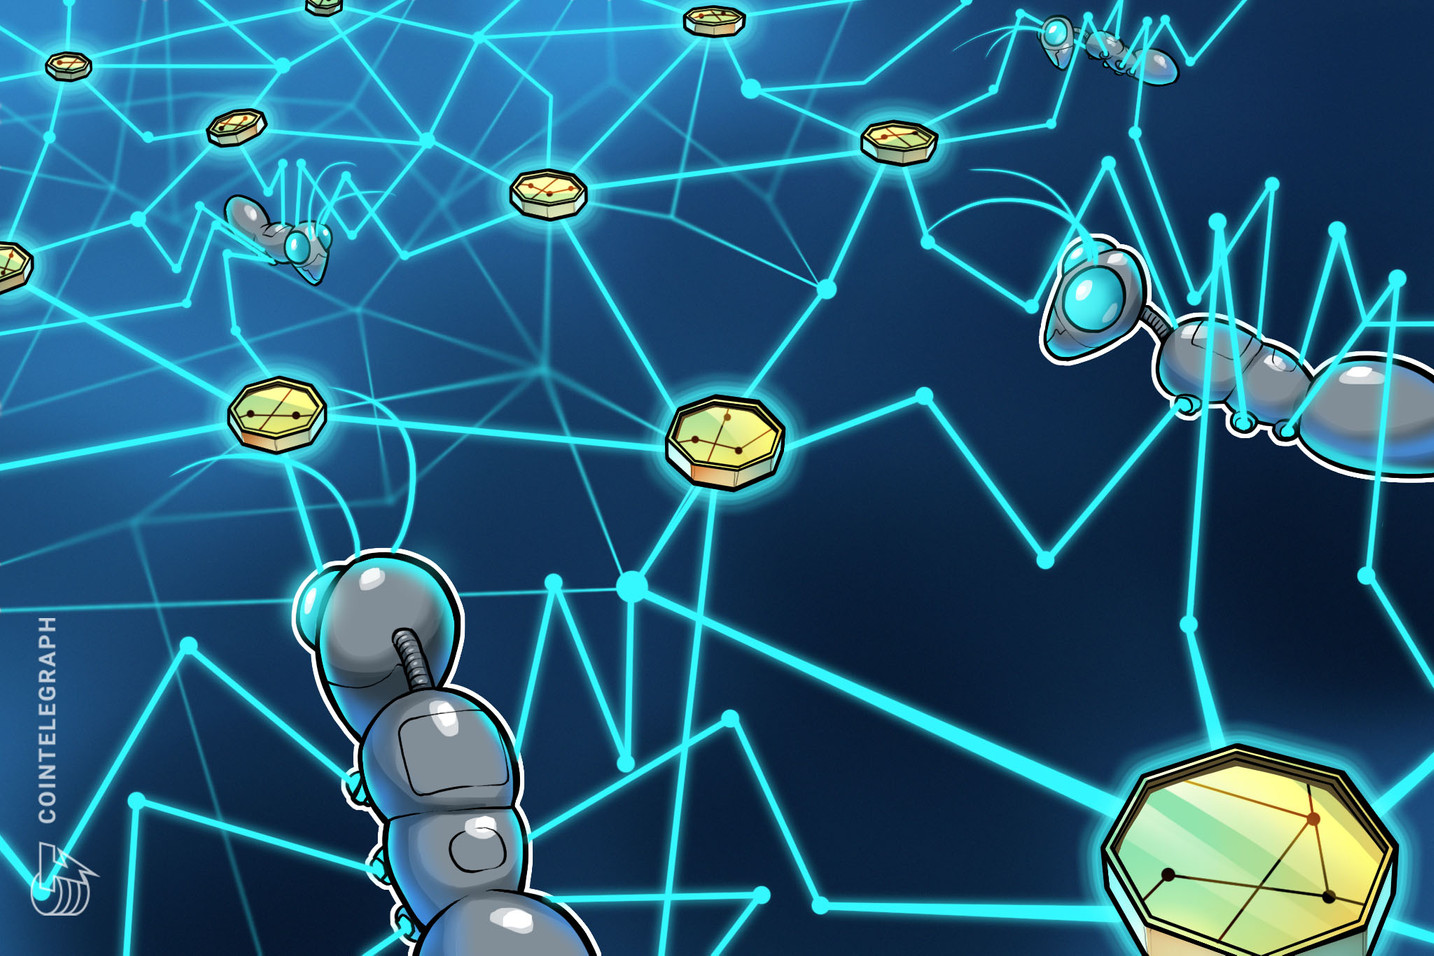 'No loss' lottery protocol PoolTogether among most utilized protocols in DeFi: Messari